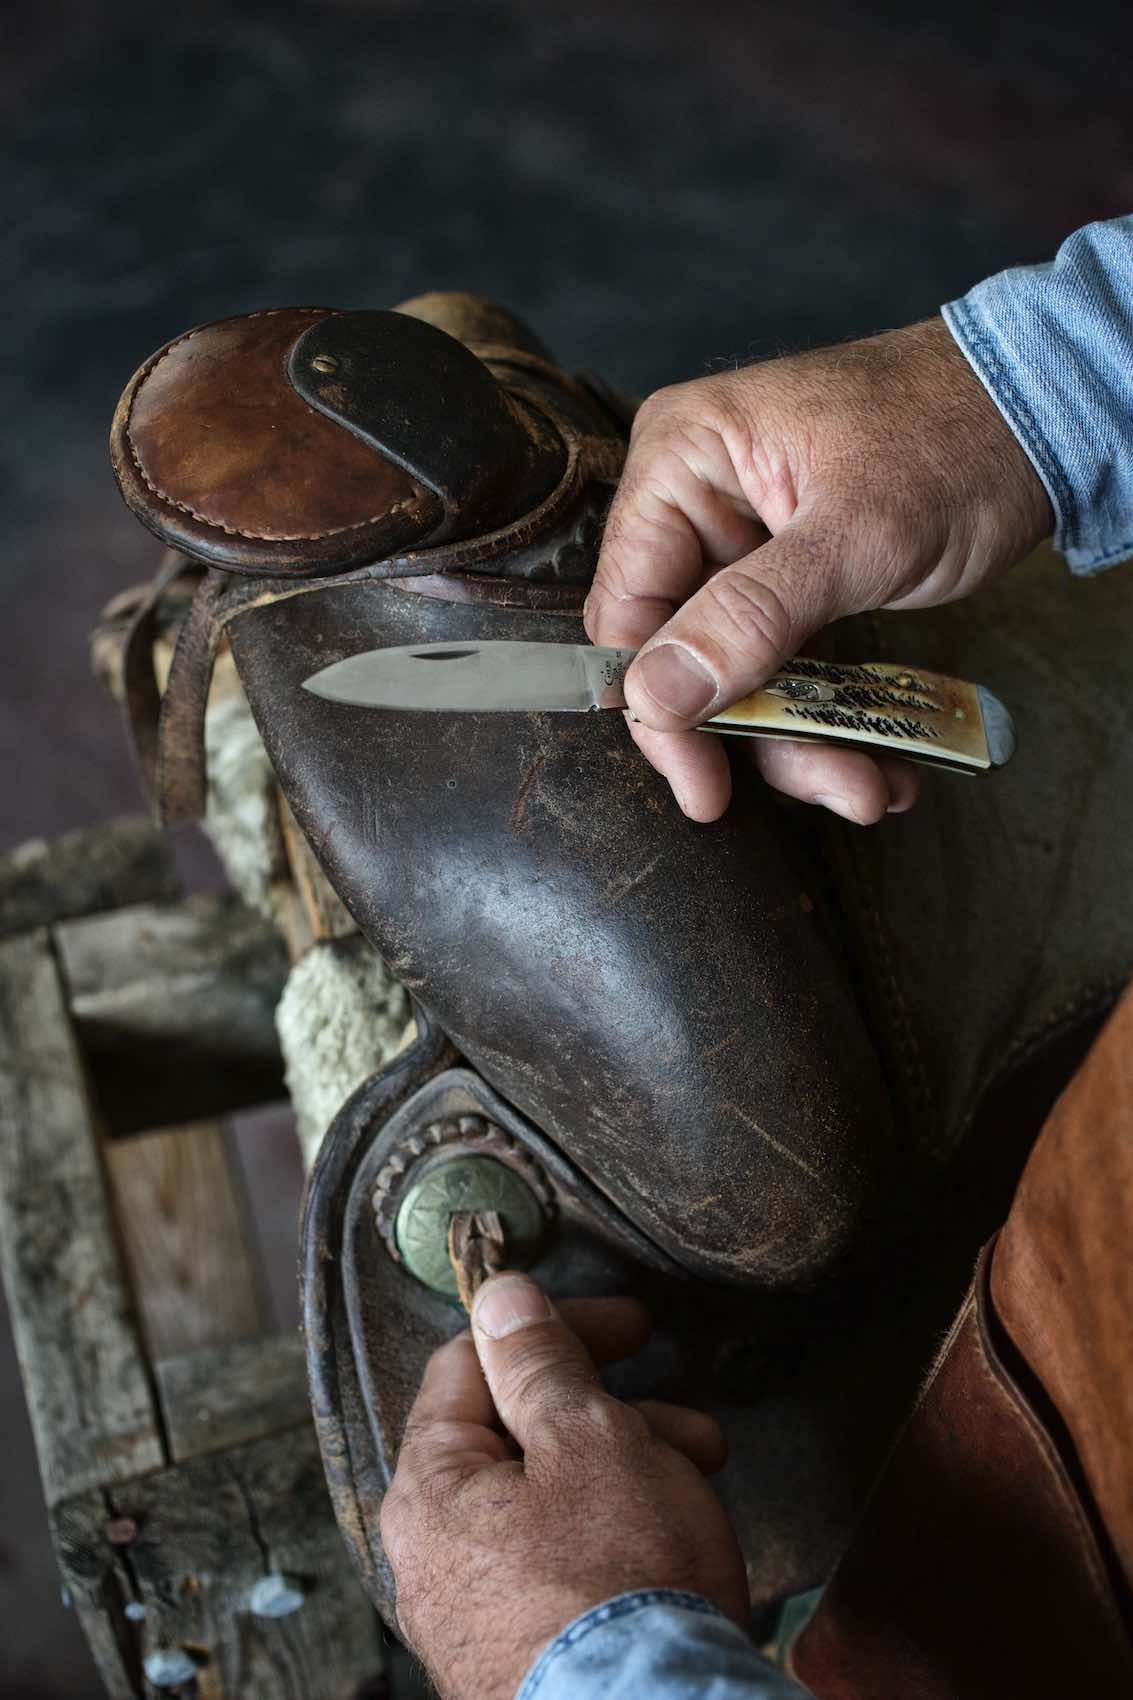 Jody Horton Photography - Western saddle and pocket knife, shot for Case Knives.